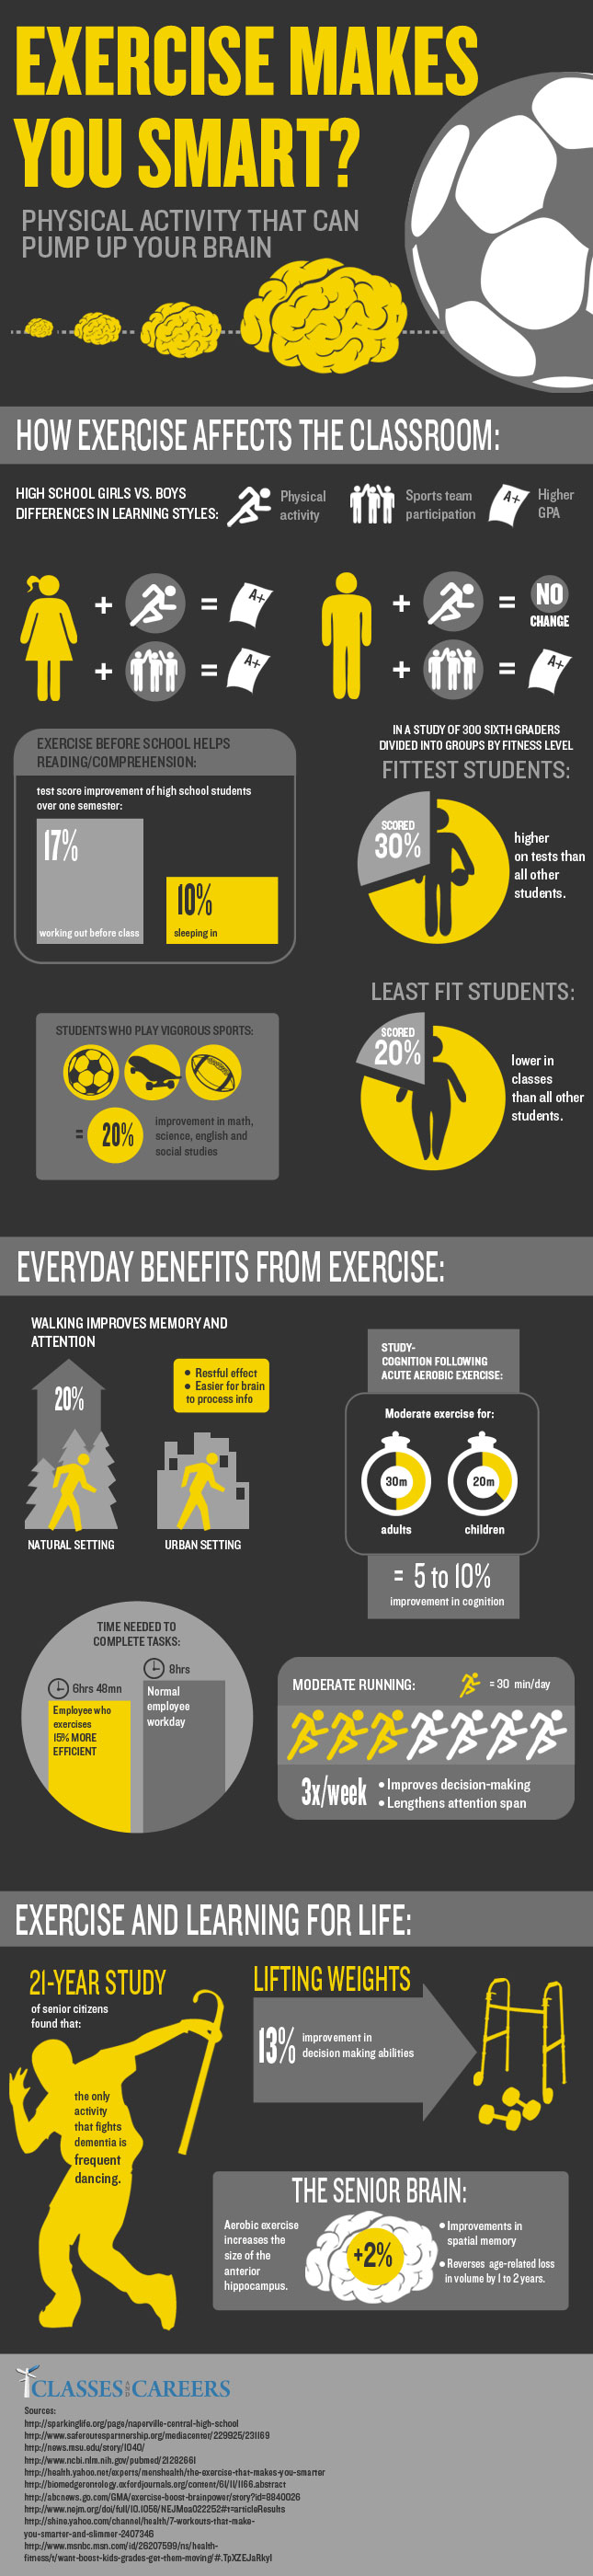 Exercise Makes You Smart - Infographic